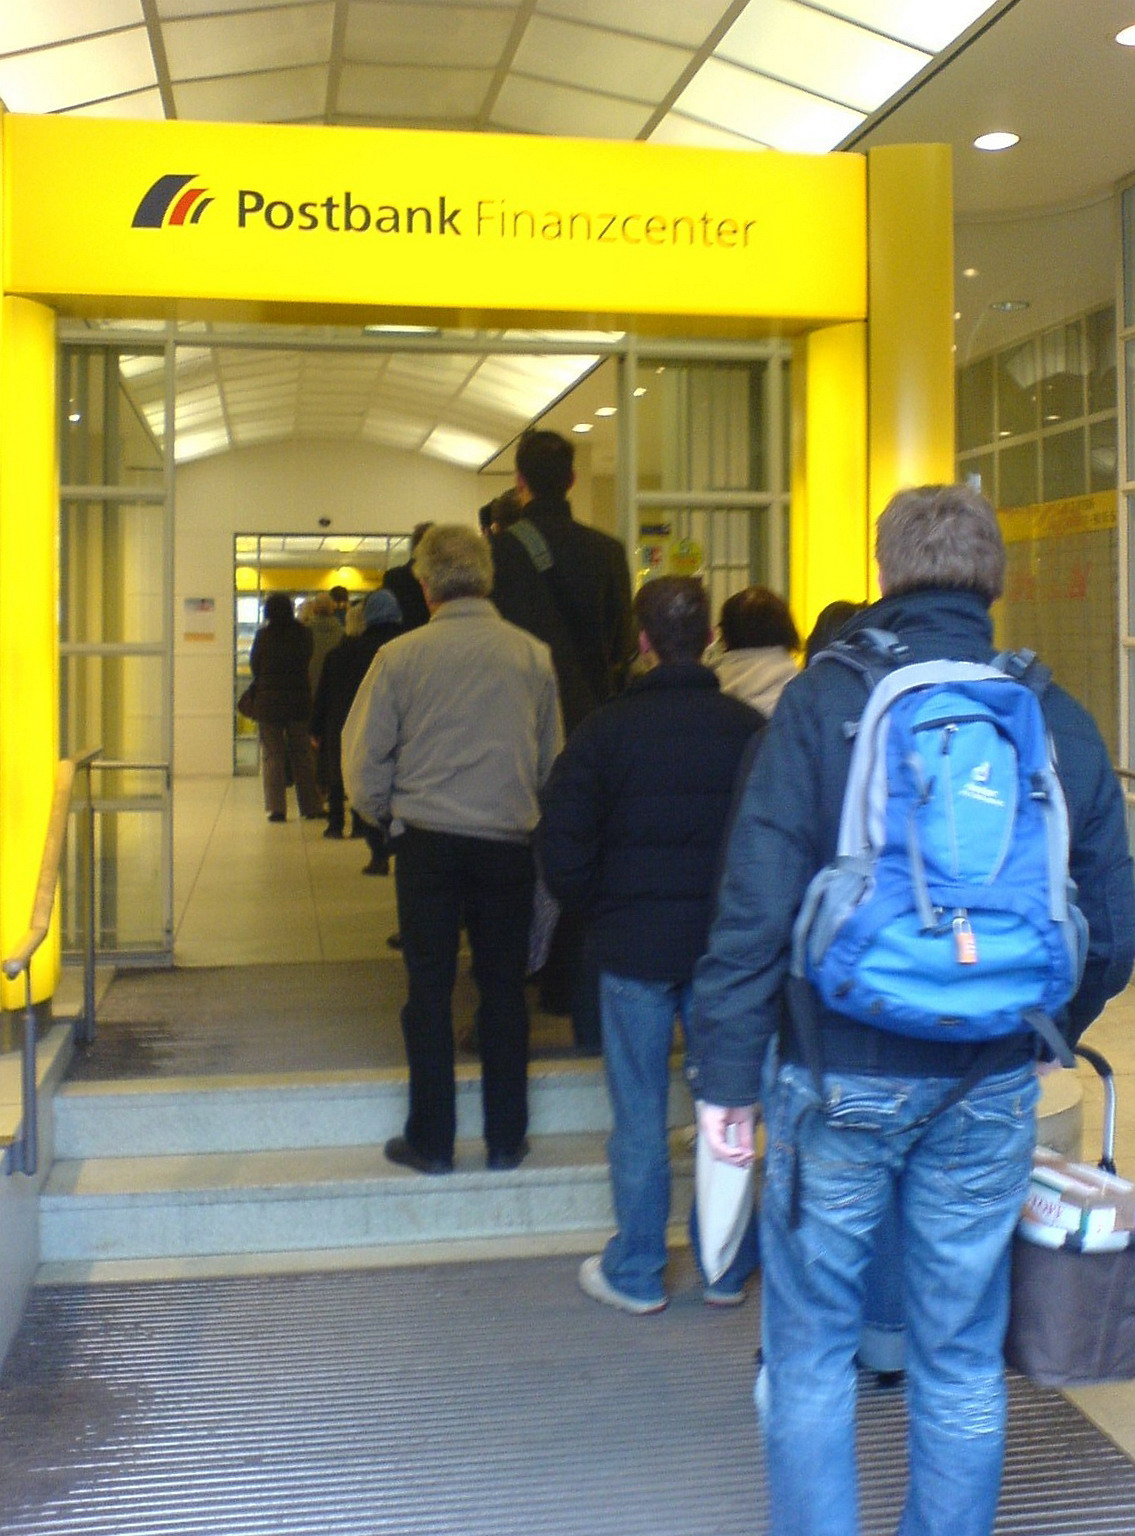 http://upload.wikimedia.org/wikipedia/commons/6/65/Deutsche_Post-Filiale_Tegernseer_Landstr._-_Waiting_line.JPG